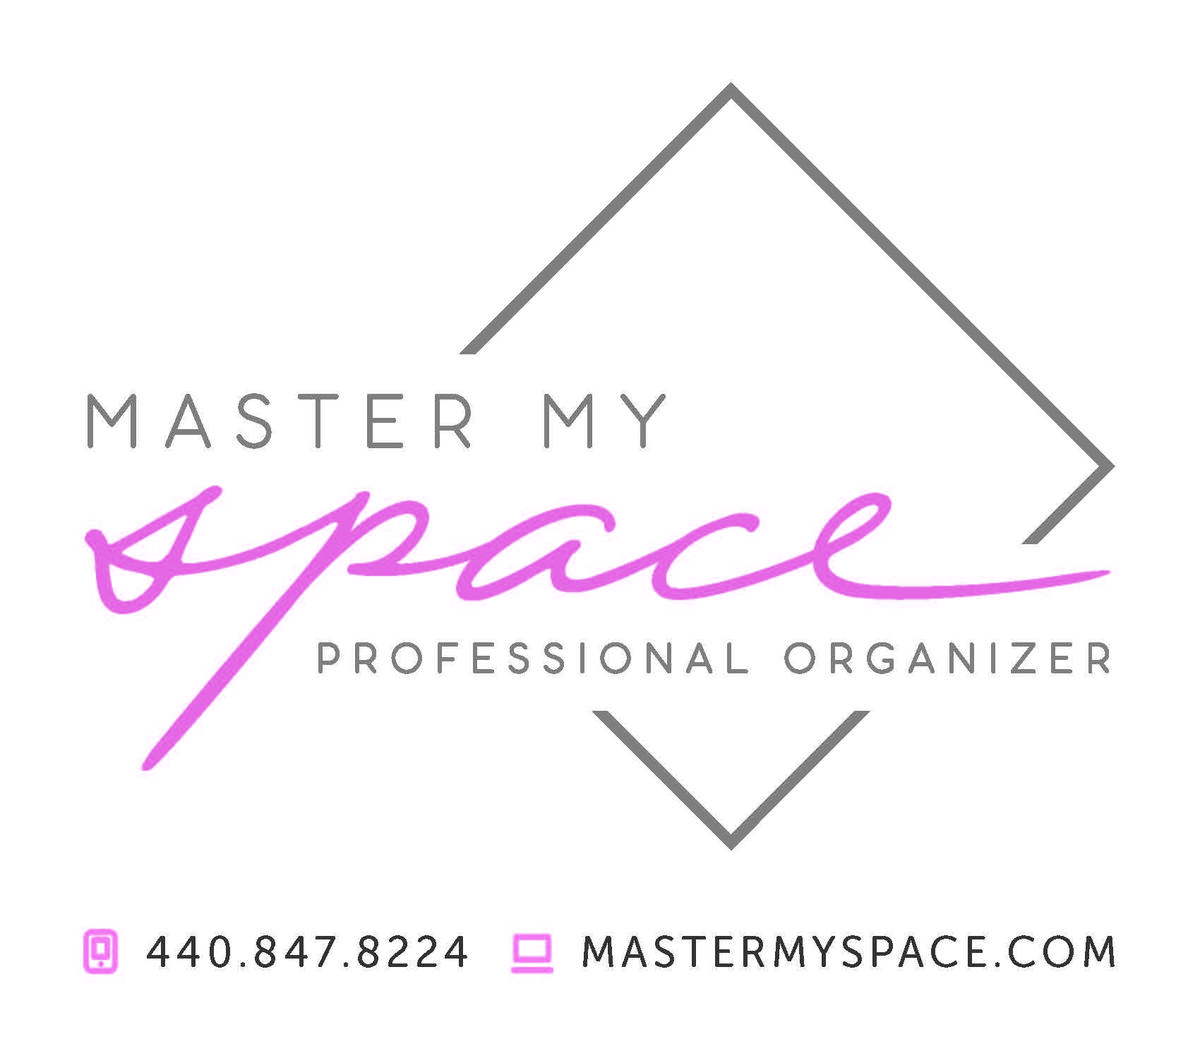 master my space